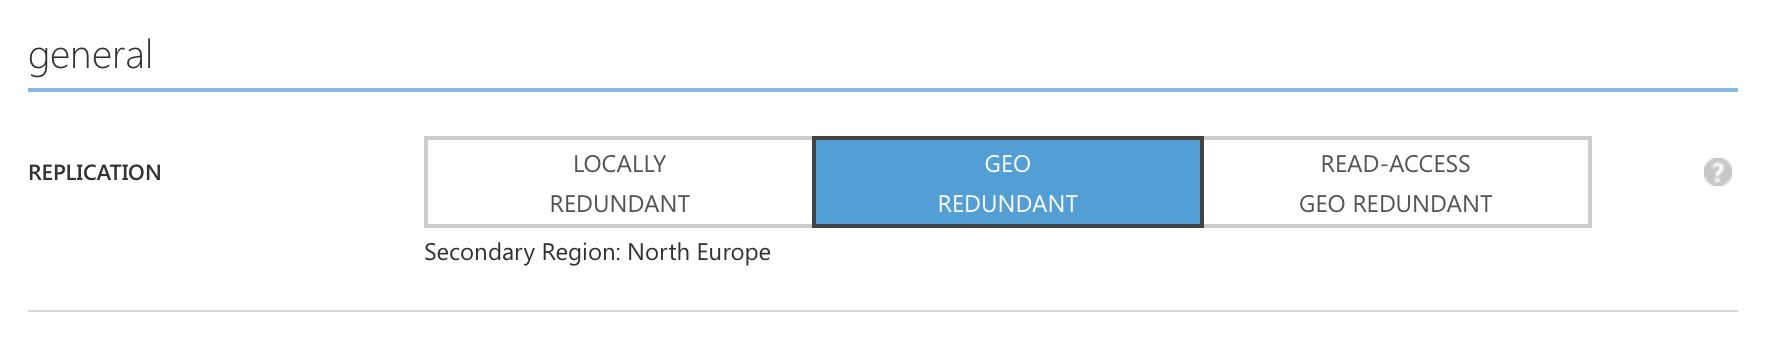 Azure Storage Geo Redundancy